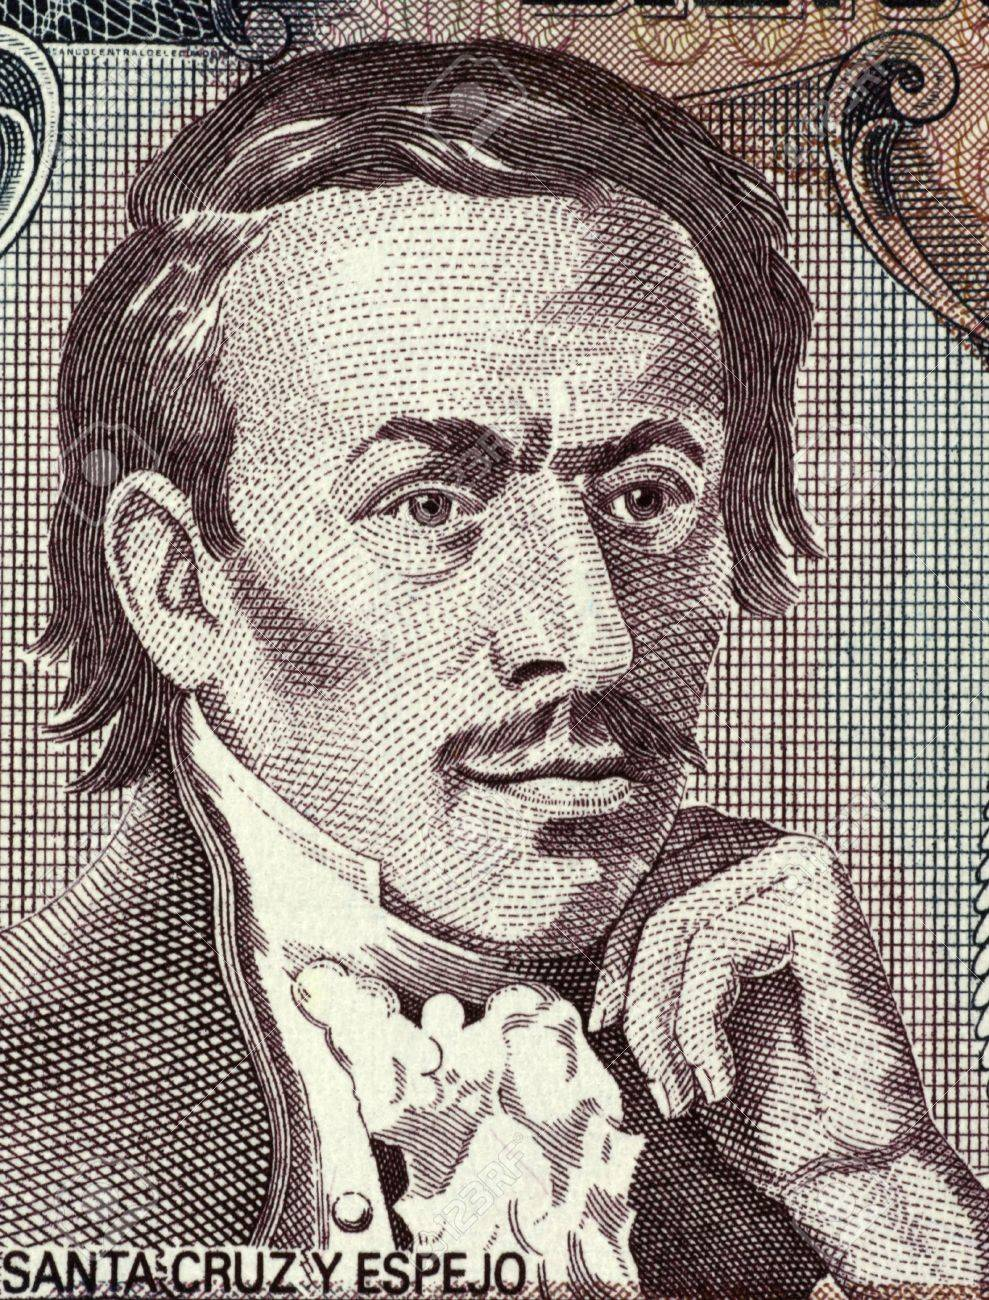 Eugenio Espejo (1747-1795) on 500 Sucres 1988 Banknote from Ecuador. Medical pioneer, writer and lawyer of mestizo origin in colonial Ecuador. - 12812770-Eugenio-Espejo-1747-1795-on-500-Sucres-1988-Banknote-from-Ecuador-Medical-pioneer-writer-and-lawyer--Stock-Photo